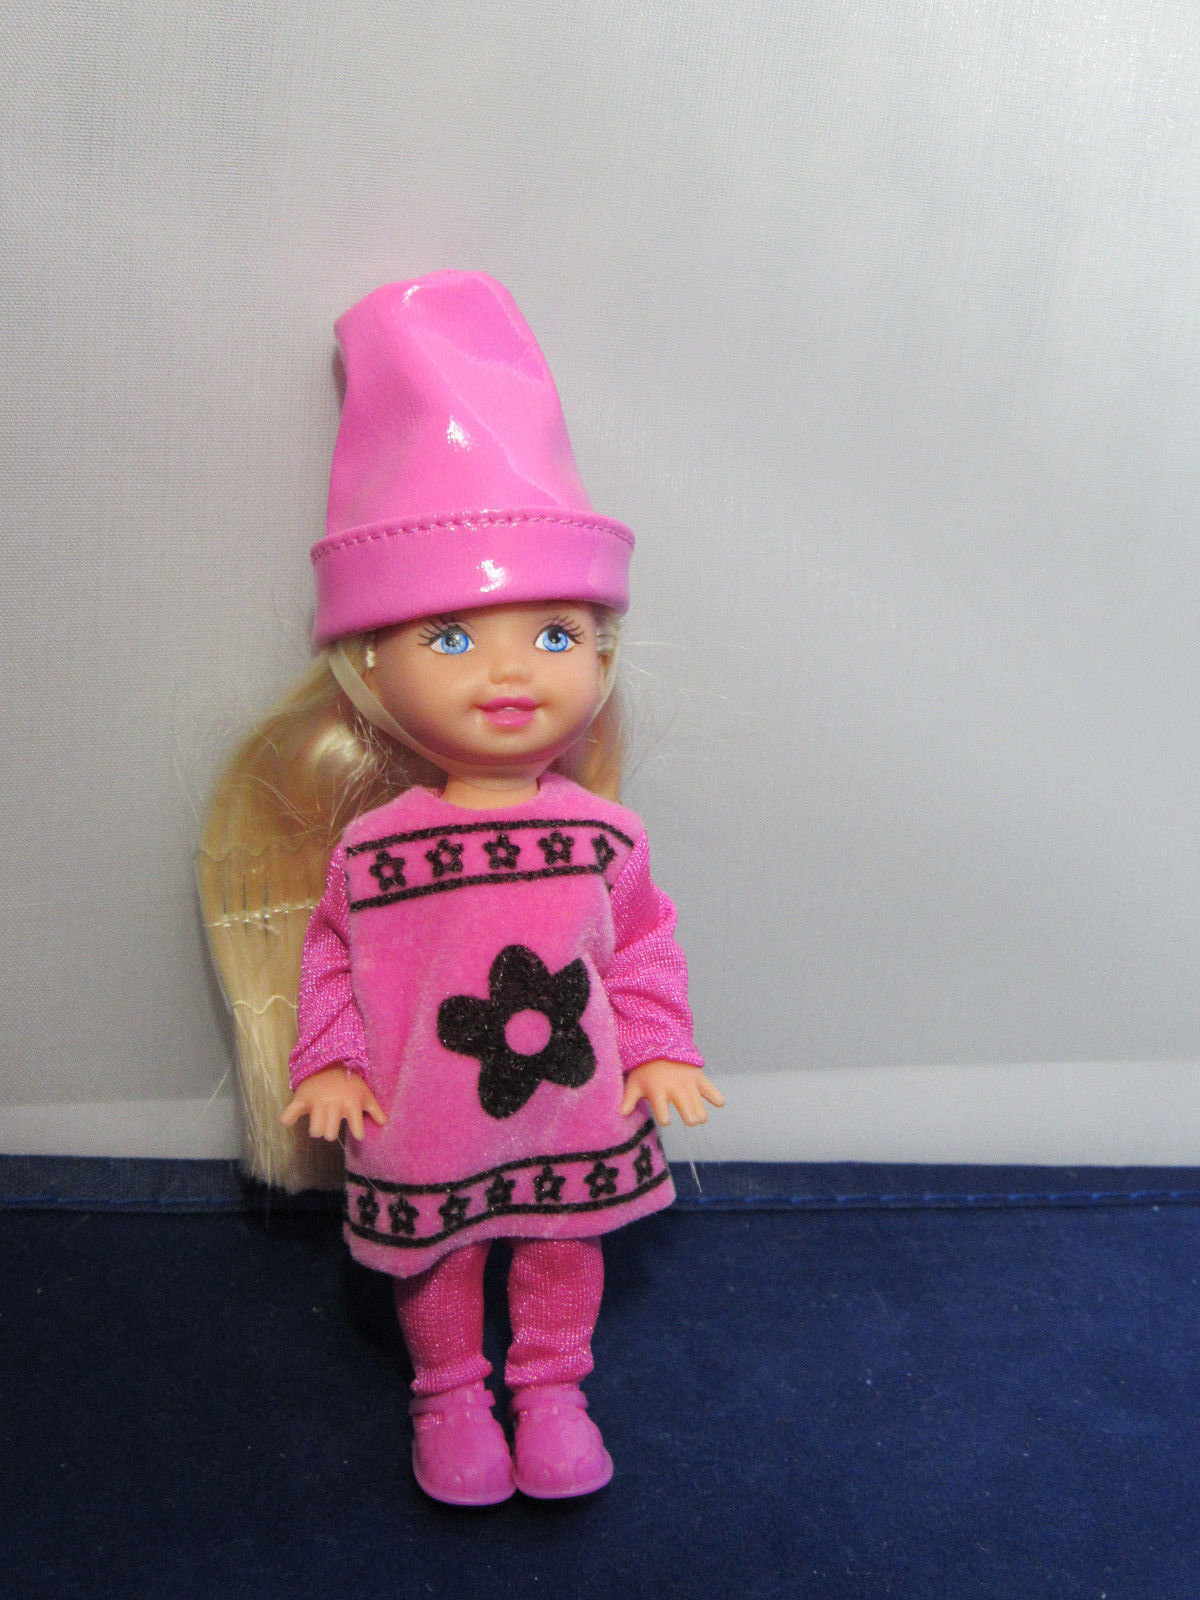 Primary image for Crayola Crayon Color Kelly Doll Pink Collector Barbie Sister Walmart DEBOXED